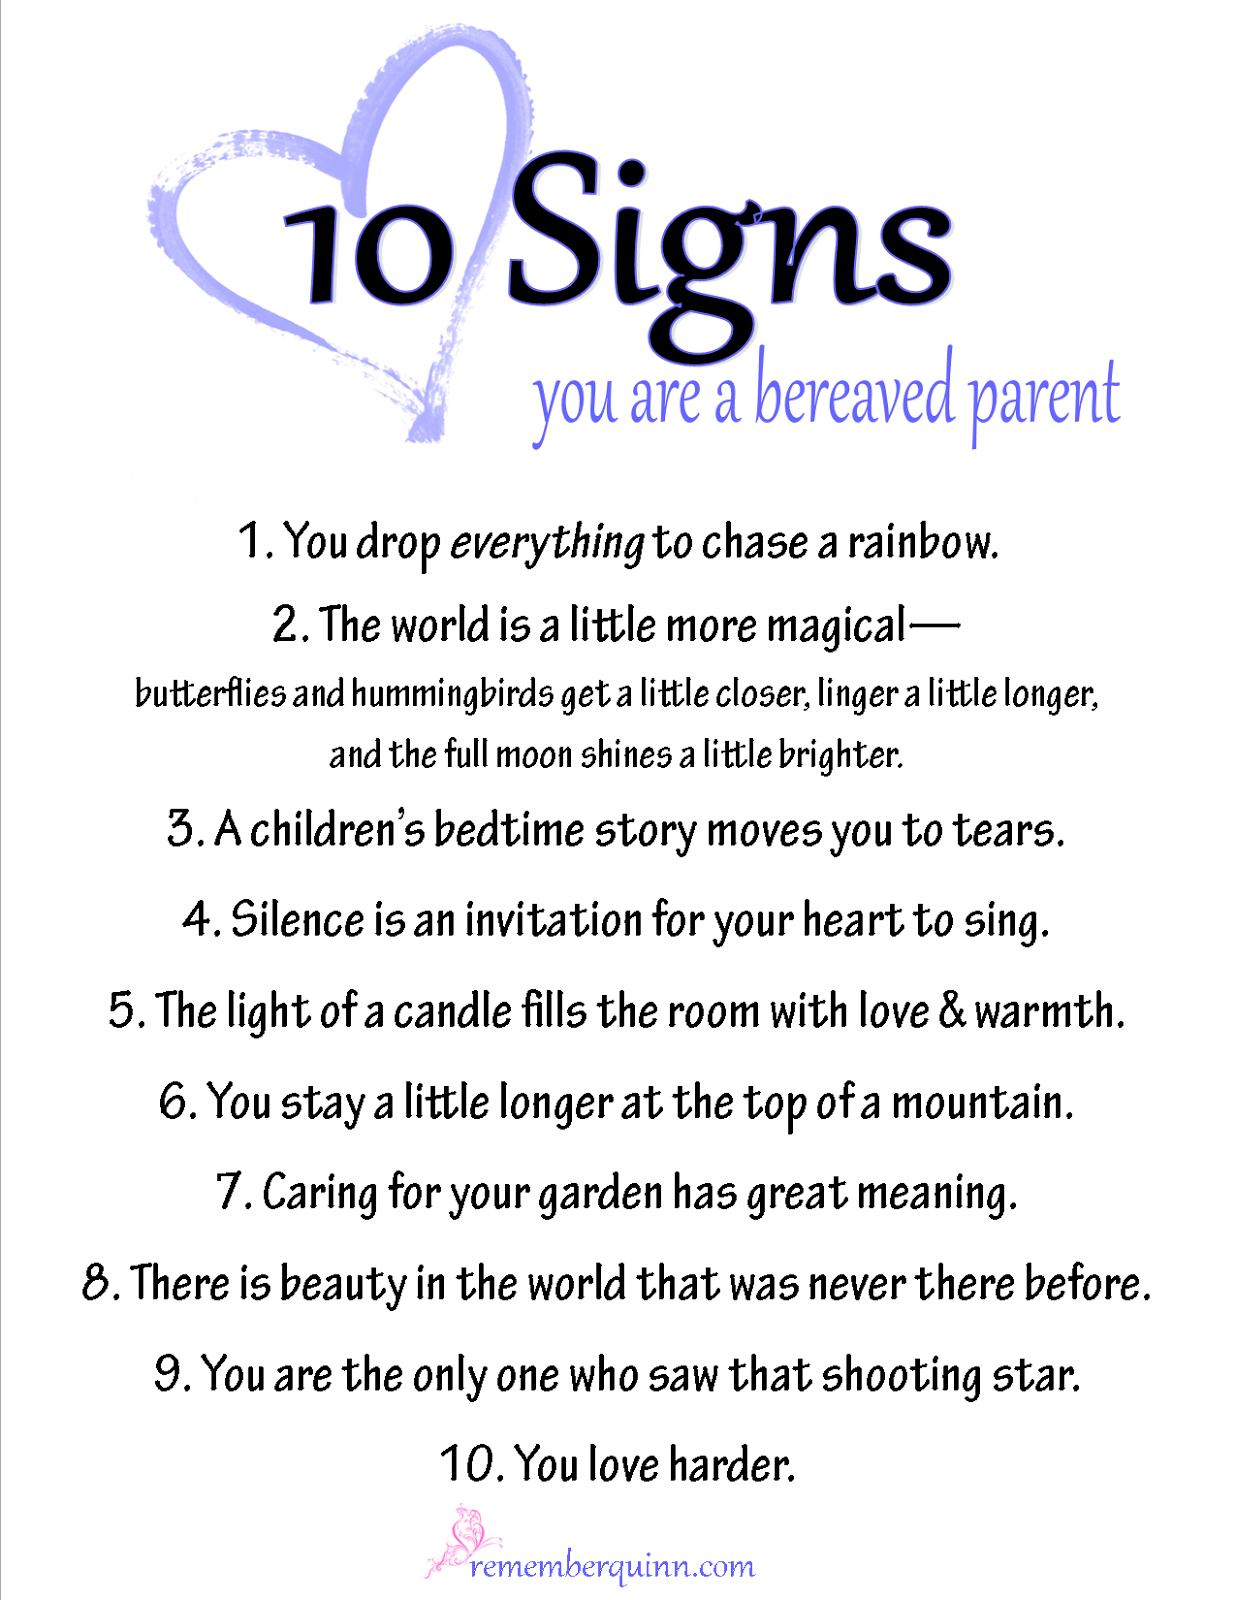 10 signs you are a bereaved parent